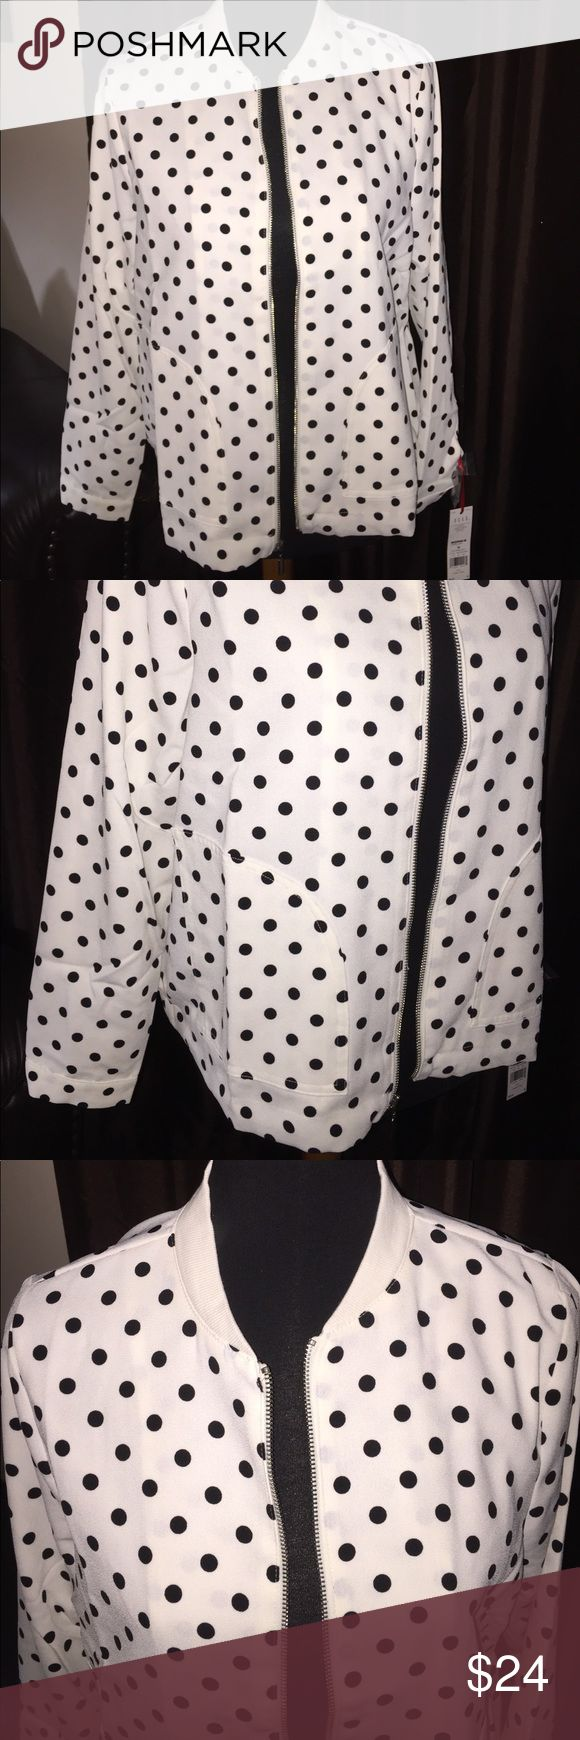 NWT Elle Polka Dot Zip Up Jacket - Size Medium This jacket is long sleeved. It zips up. The Jacket is white and the dots are black. Two pockets on the side. Light Weight. Collar is cotton. It is lined. 100% polyester. All items have been pre owned, lightly used, NWOT or NWT. They come from a smoke free home. I can not promise items are in perfect condition but they have been cared for extremely well. If there are issues please read the description and look at the images posted. If you have…